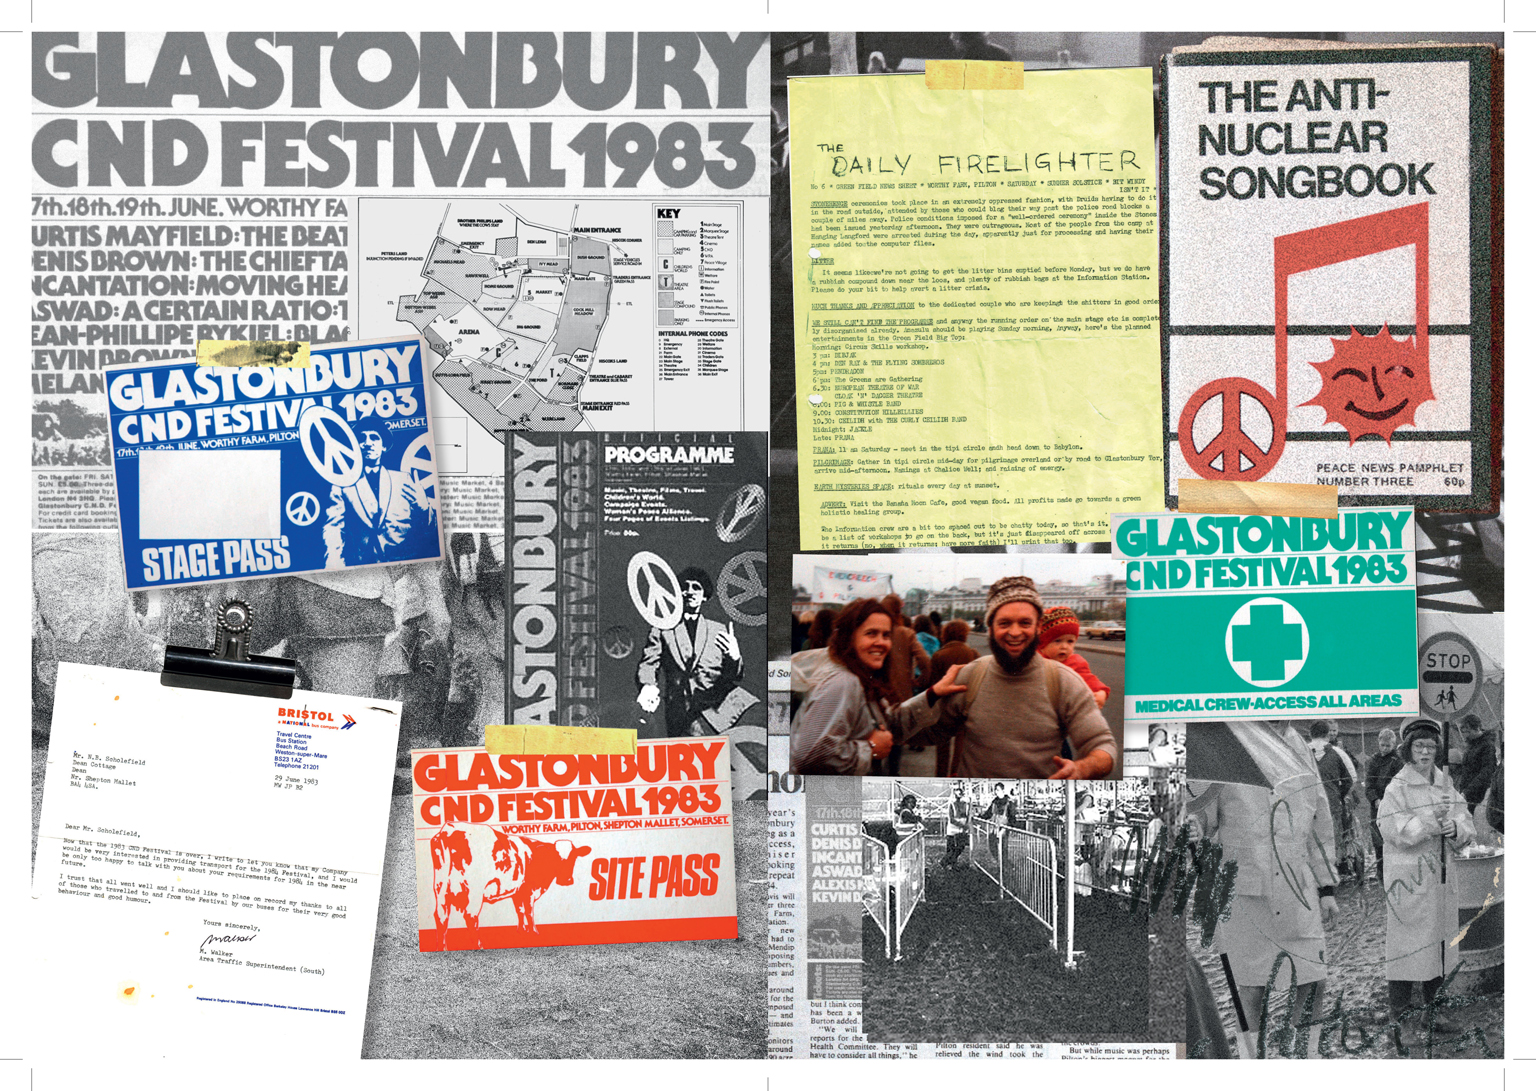 Page from the 40th anniversary scrapbook